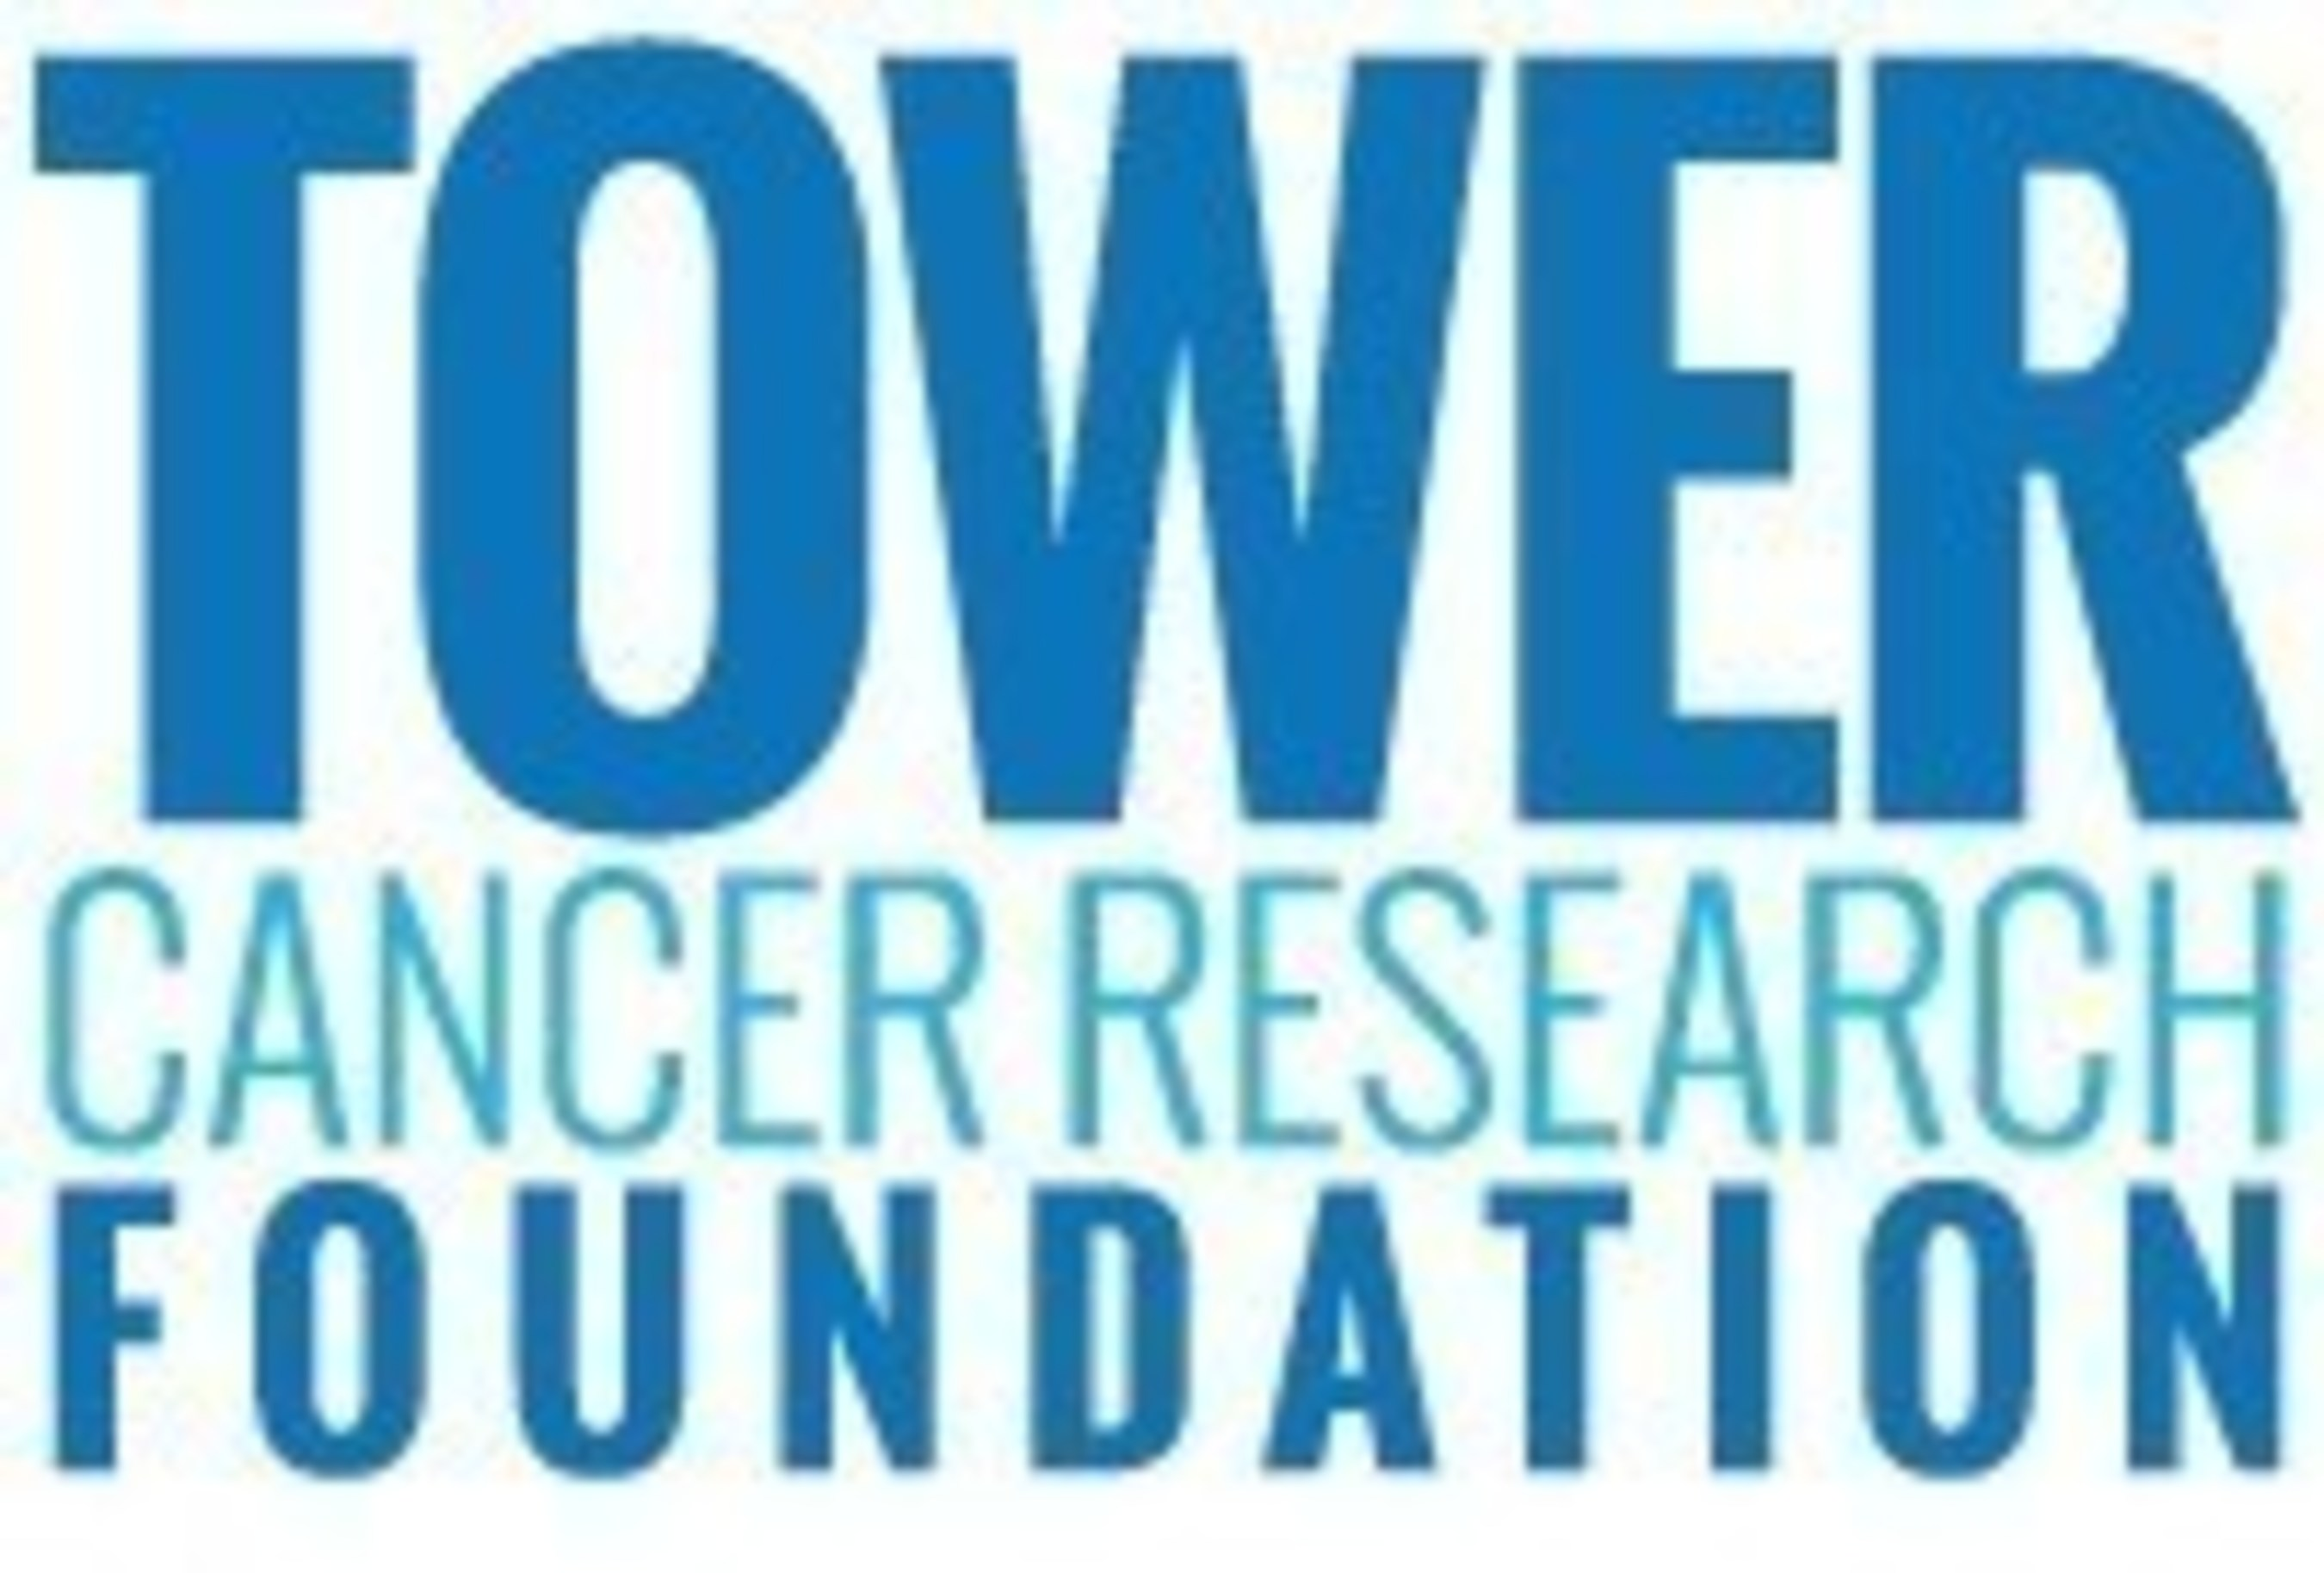 Laura Linney to be Honored for Her Cancer Advocacy, Along With Cancer Survivor and Producer Christina Simpkins and Renowned Oncologist Dr. Fred Rosenfelt at Tower Cancer